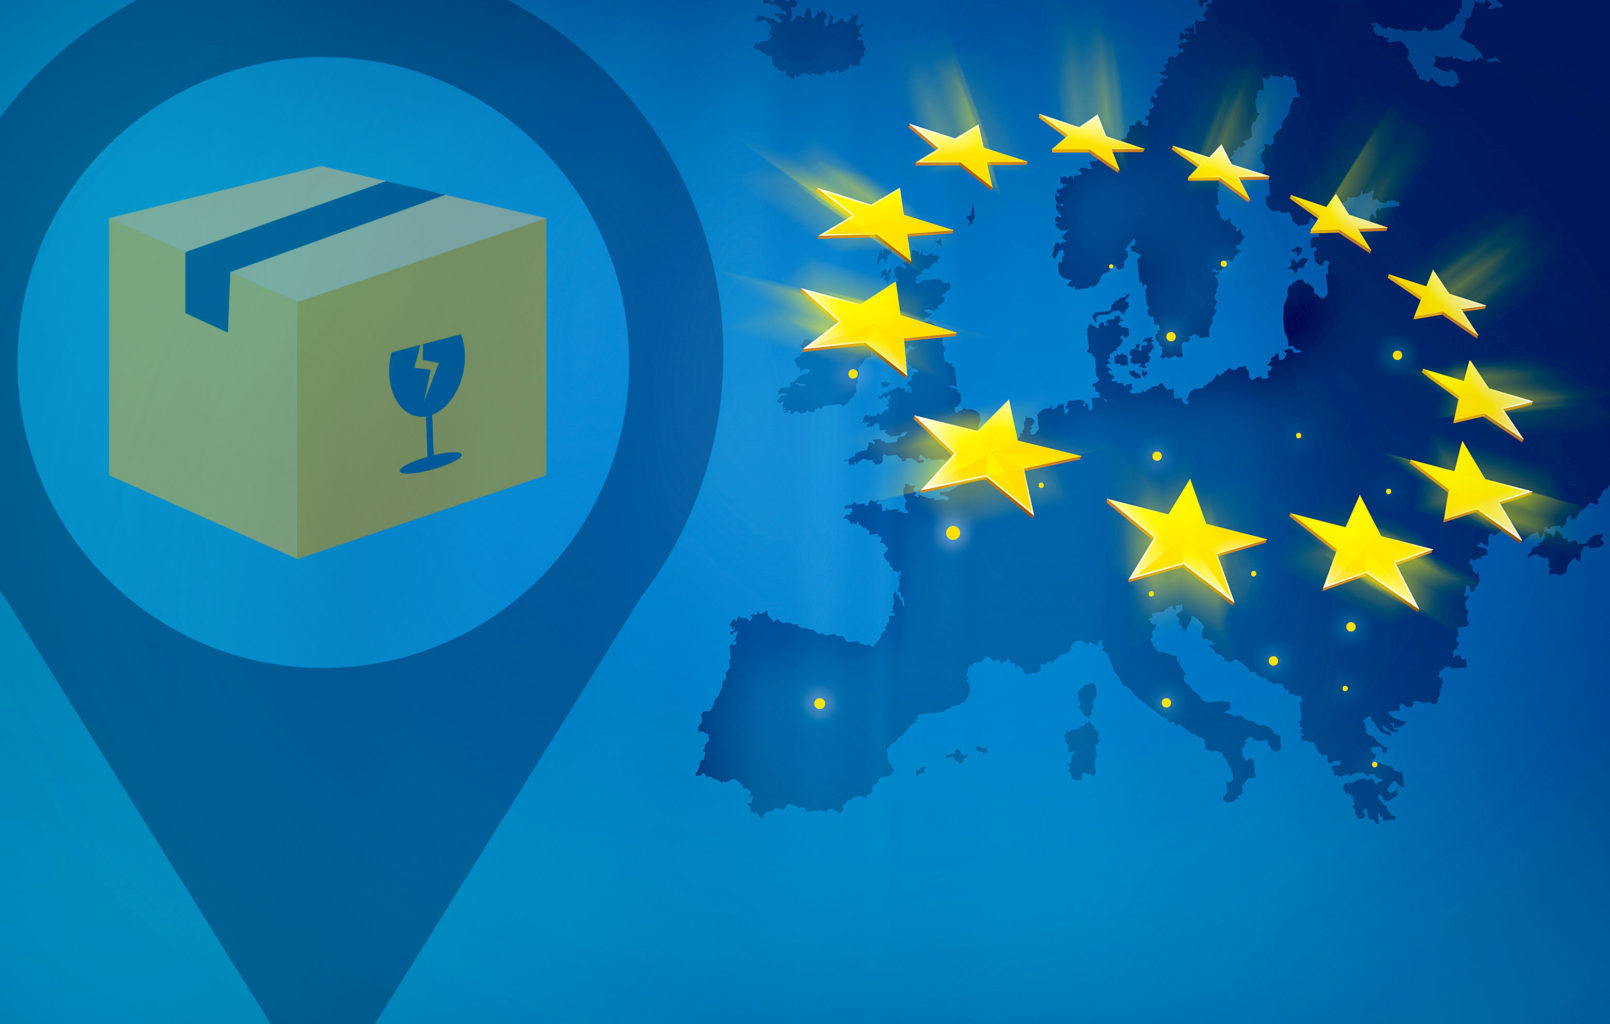 (Pan) European Fulfillment – Warehousing & Logistics – European Fulfillment Services